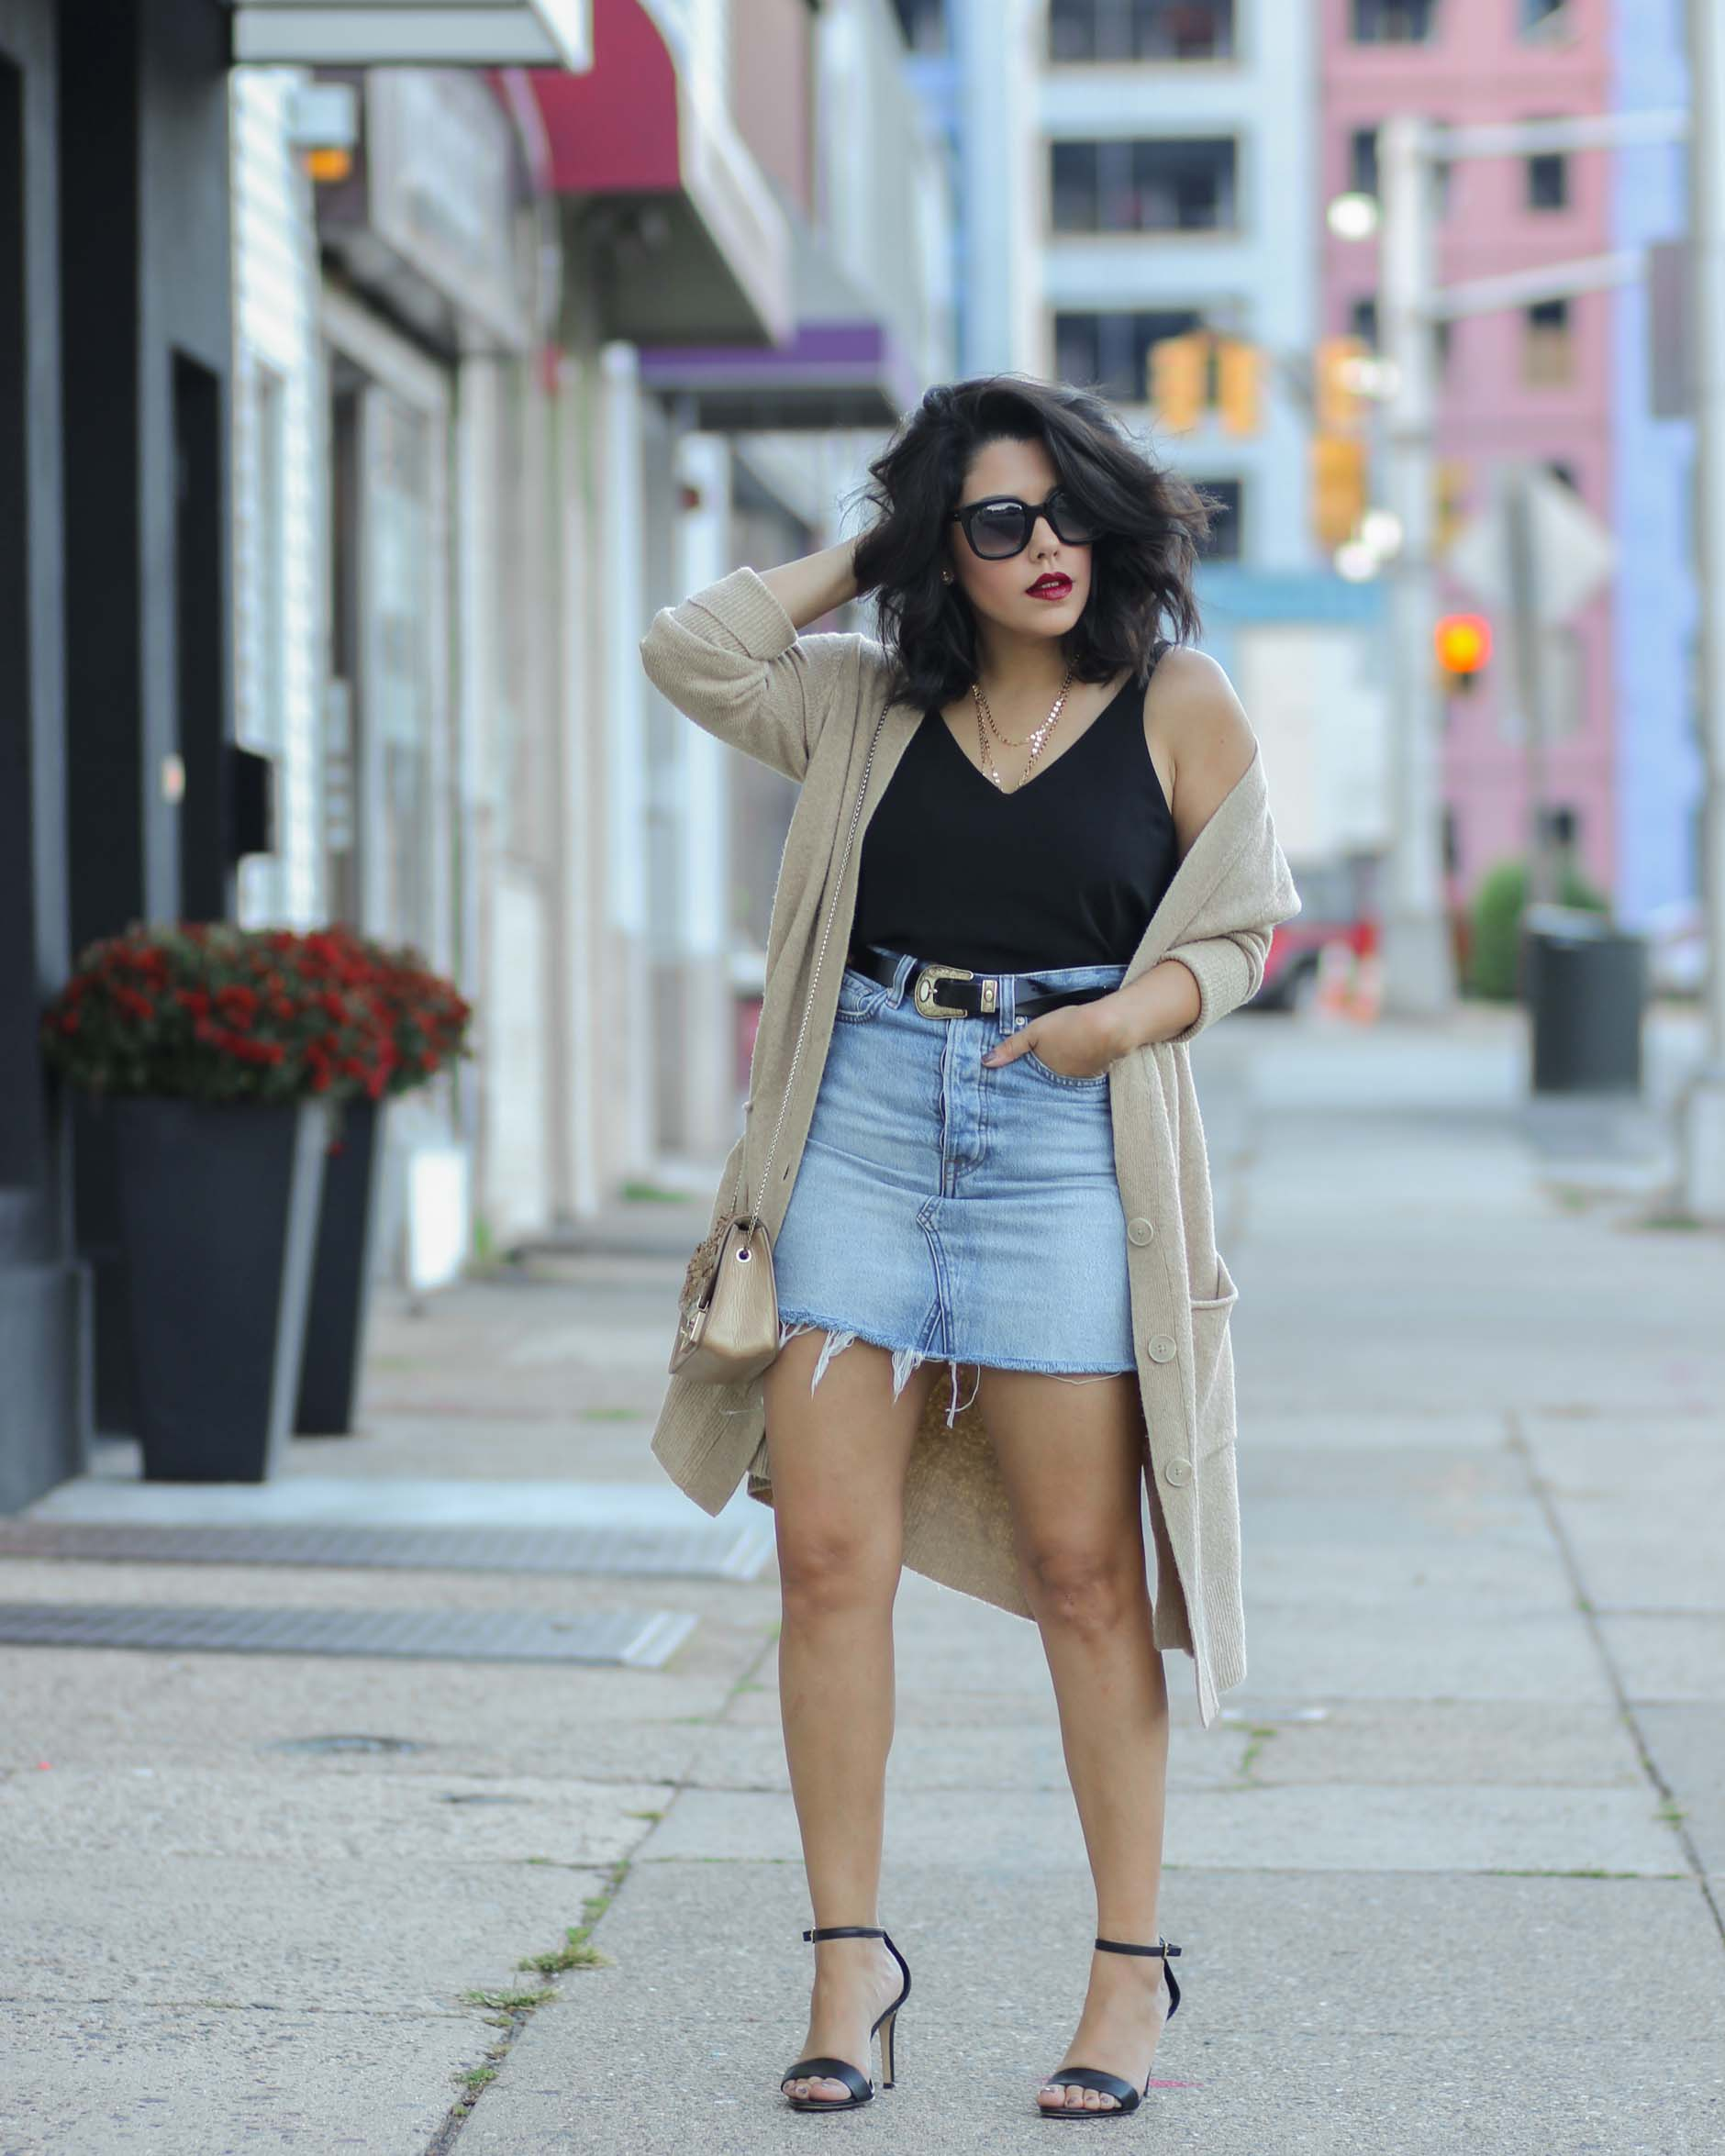 style blogger naty michele wearing denim skirt with a belt and oversized cardigan